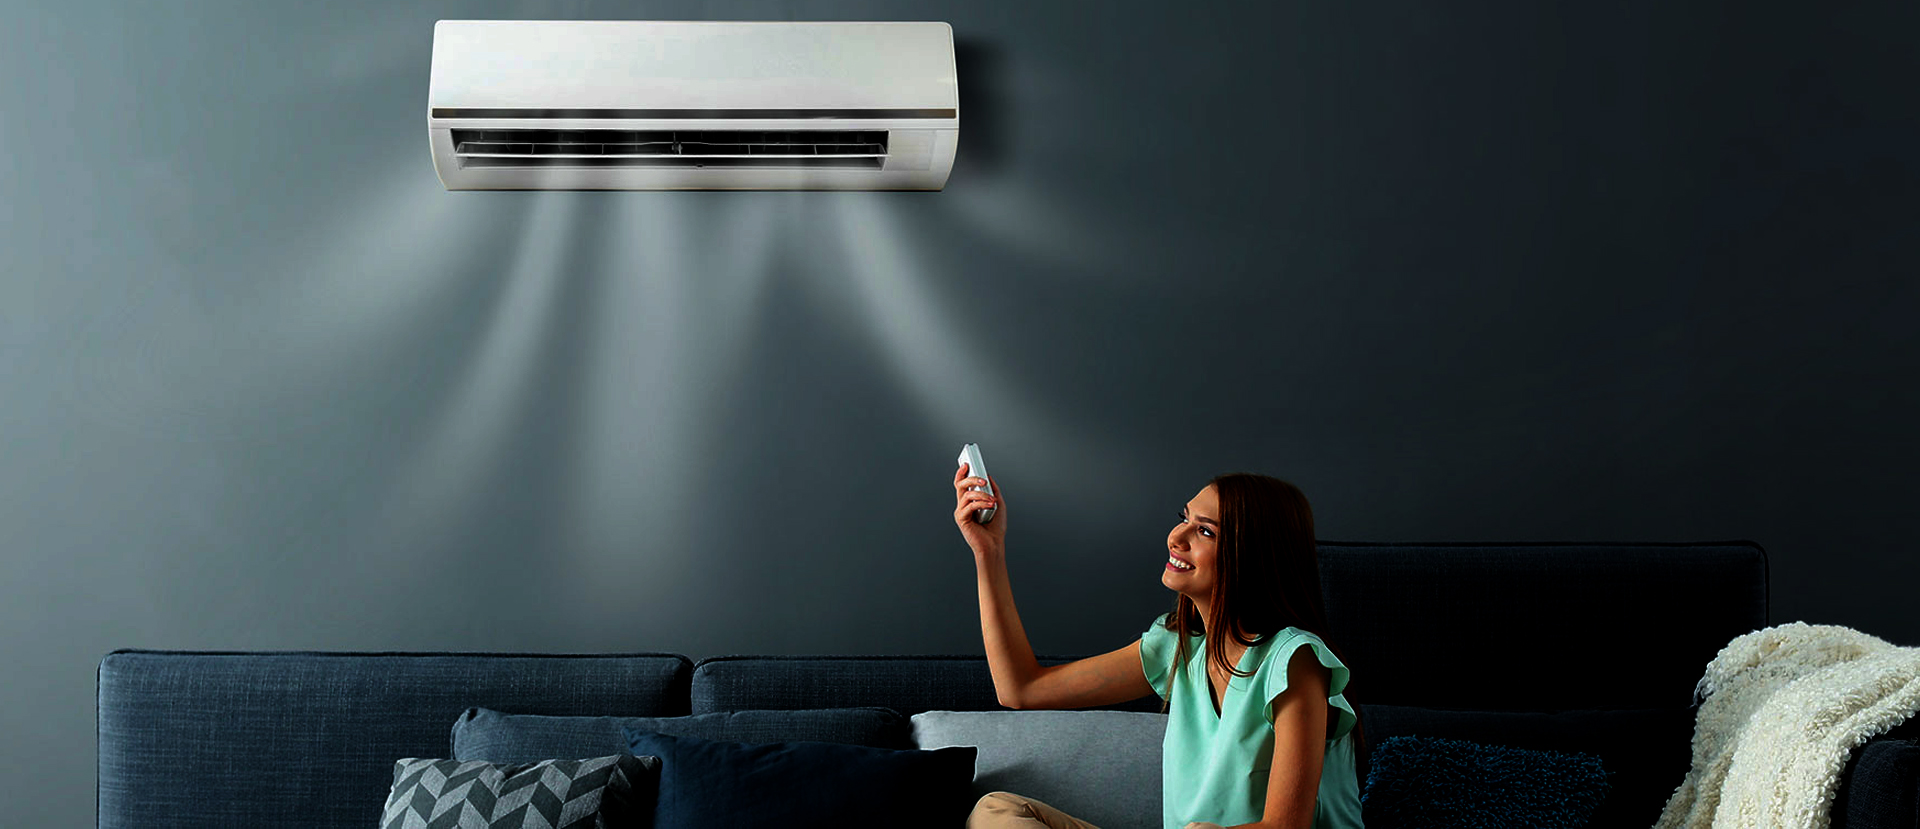 Read more about the article AC Maintenance In Studio City Dubai